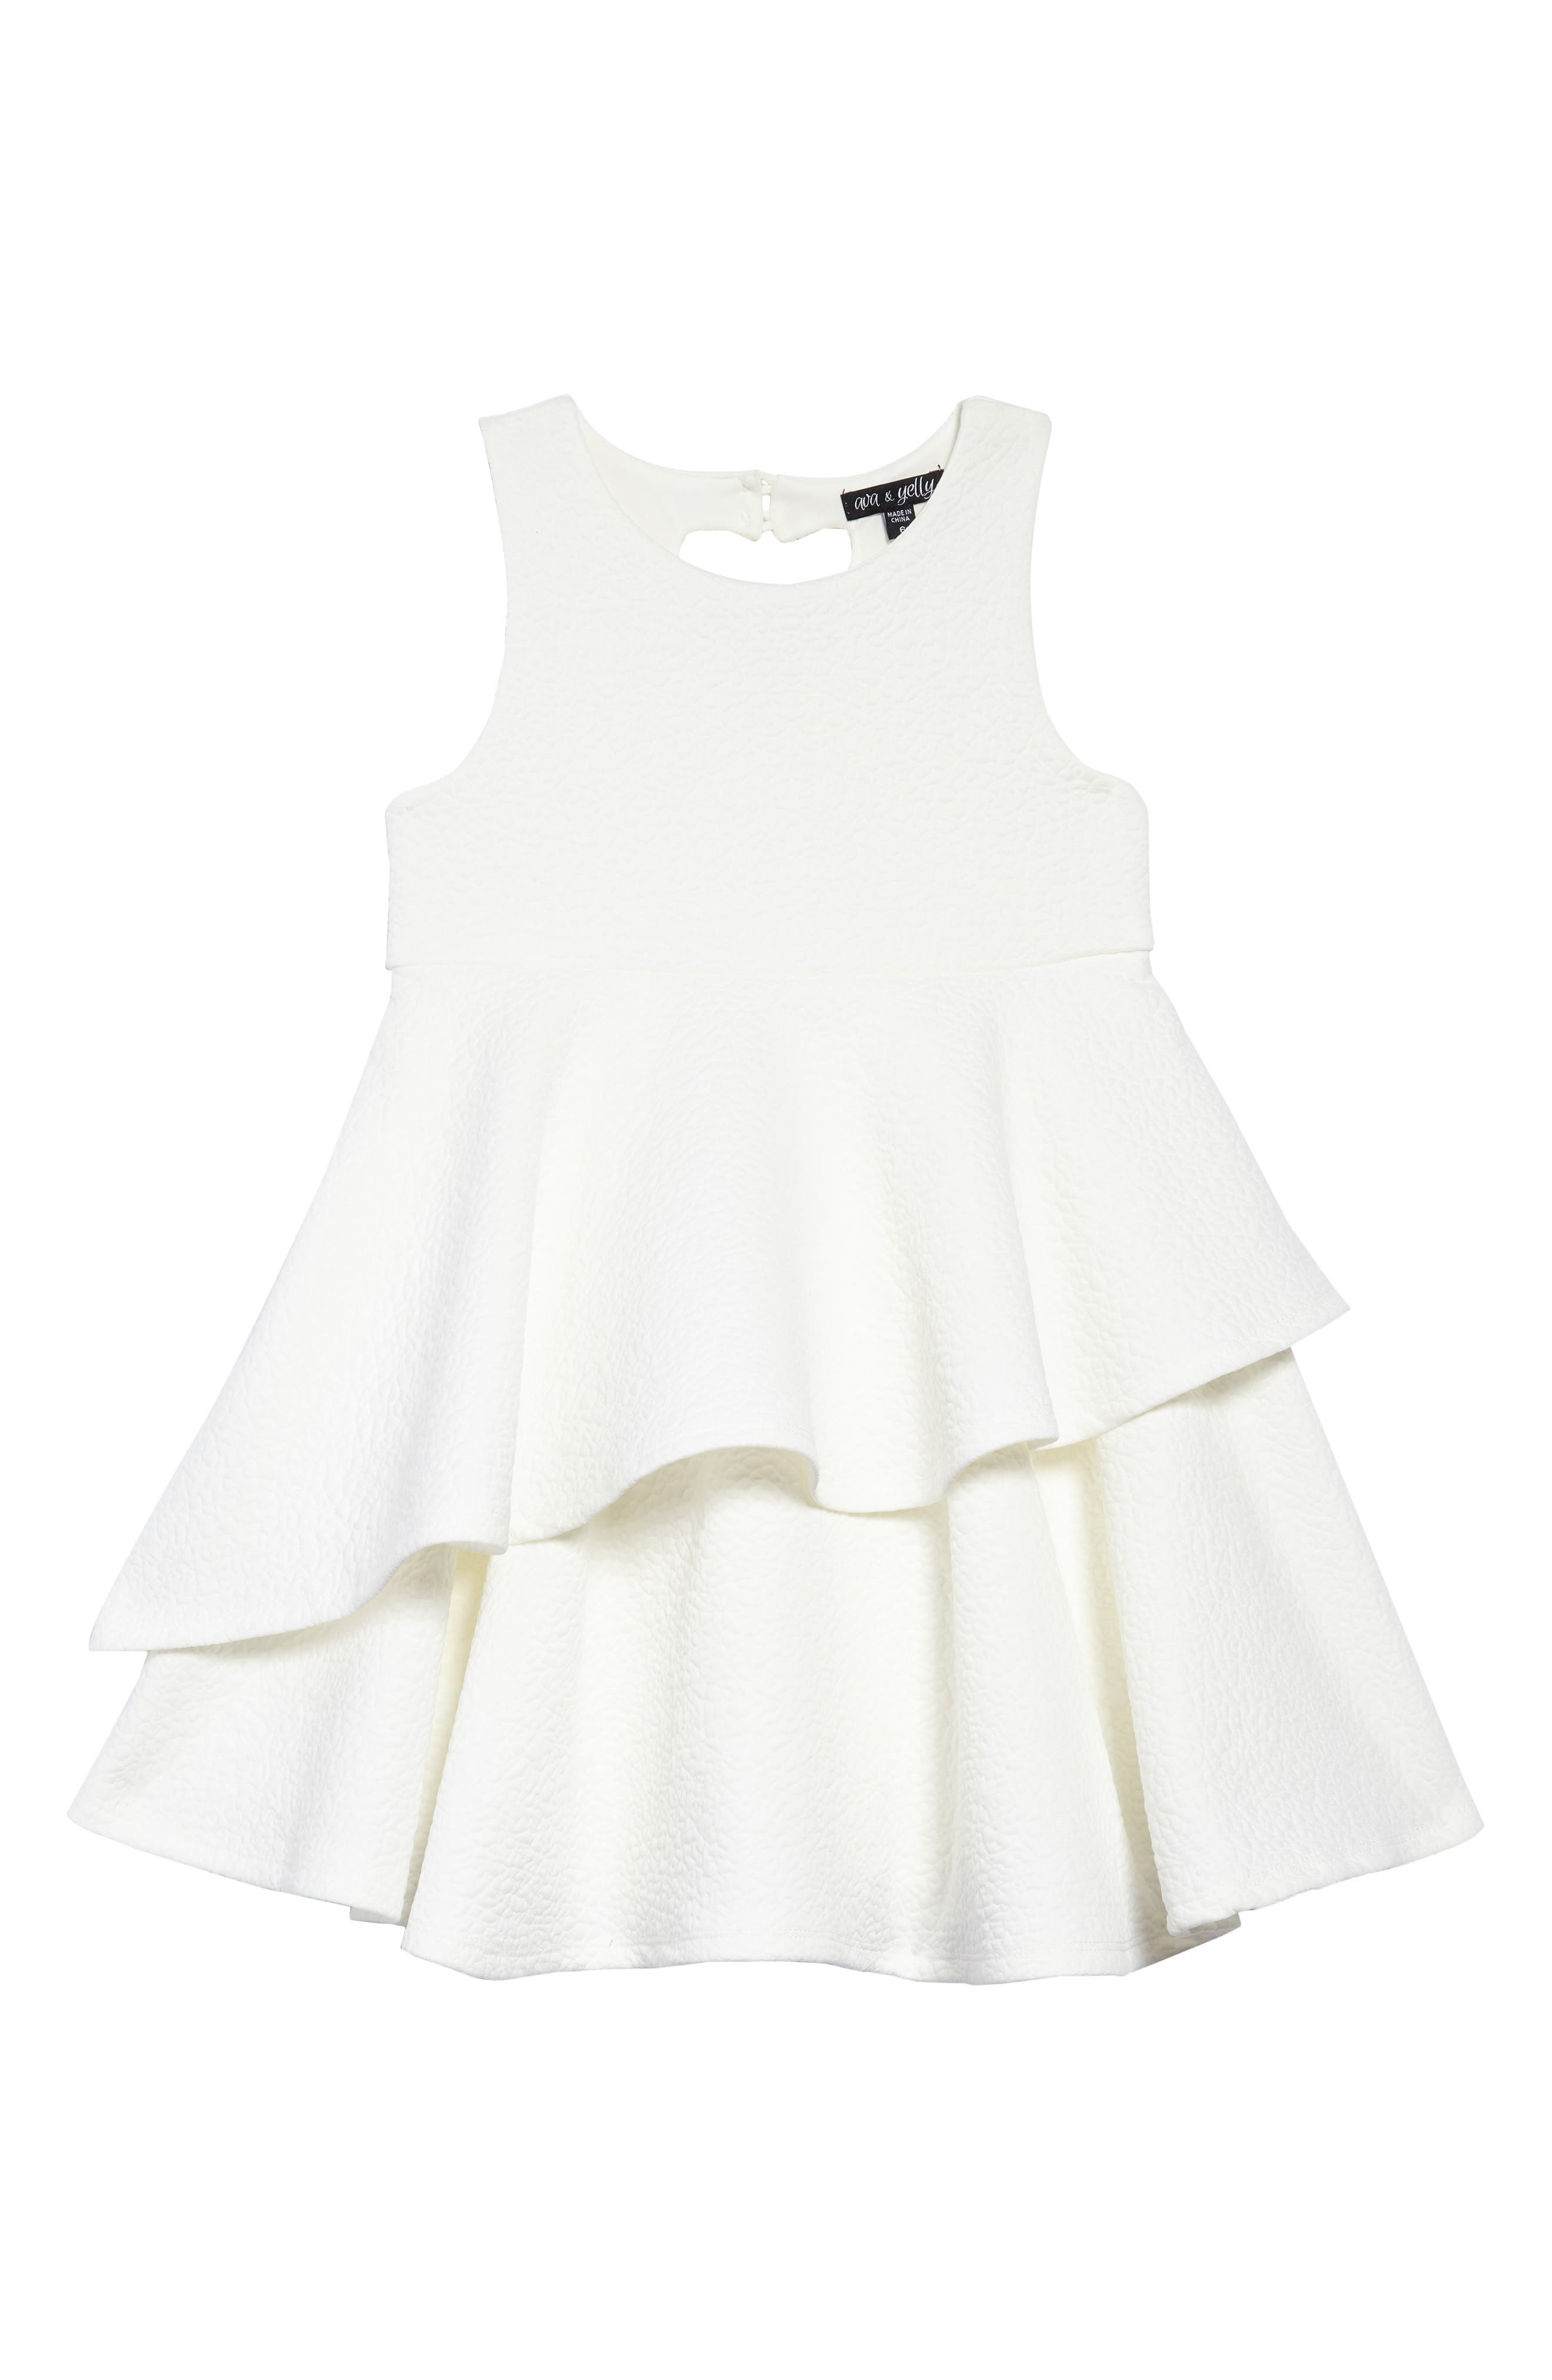 Tiered Dress,                             Main thumbnail 1, color,                             White